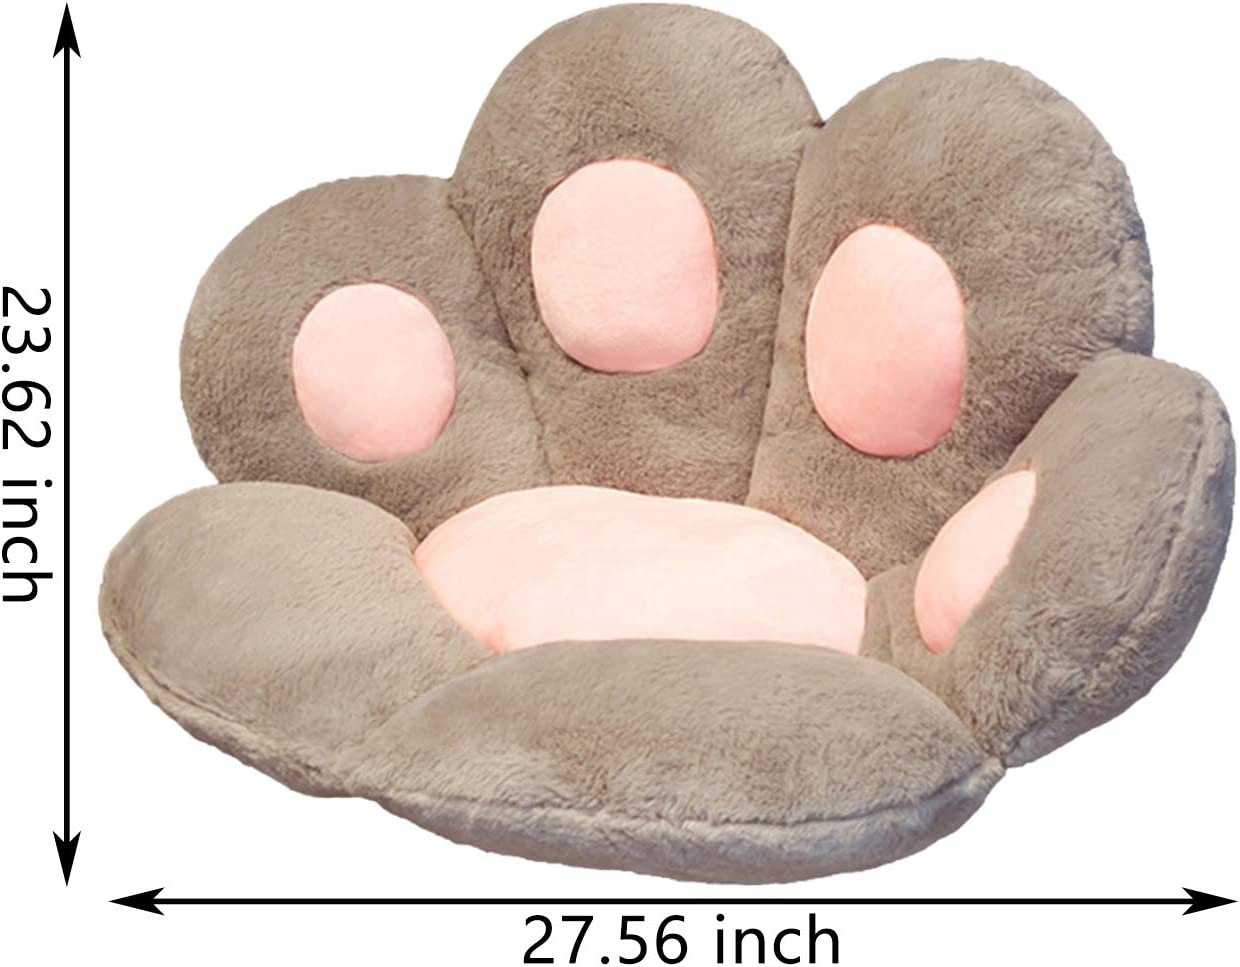 Bartholomew Cute Cat Paw Seat Cushion PP Cotton filled Cat Paw Cushion Cat Paw Plush Pillow Decoration Chair Cushion for Office//Car//Home Ground Comfortable Cat Paw Mat 6052cm Lazy Sofa